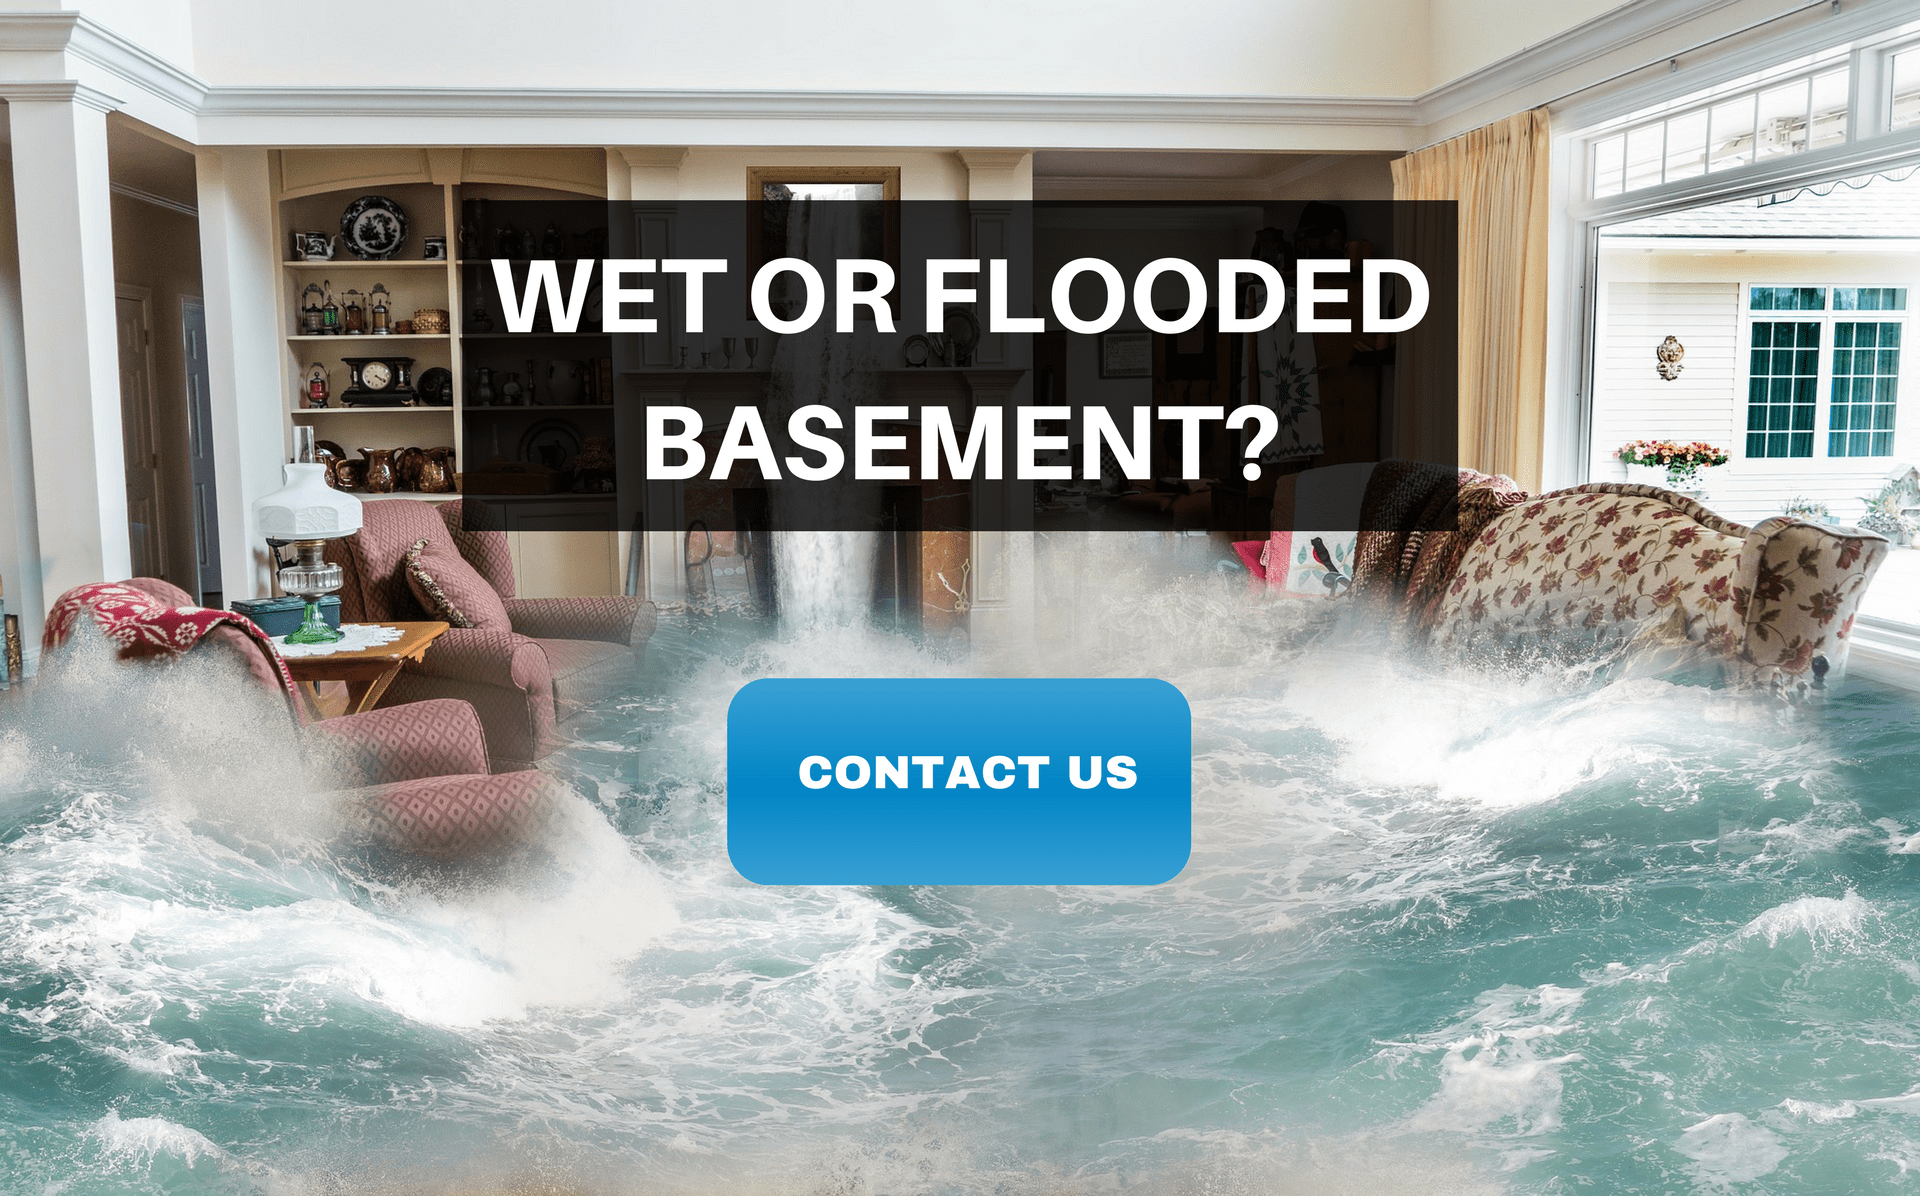 toronto basement 24 hours emergency service